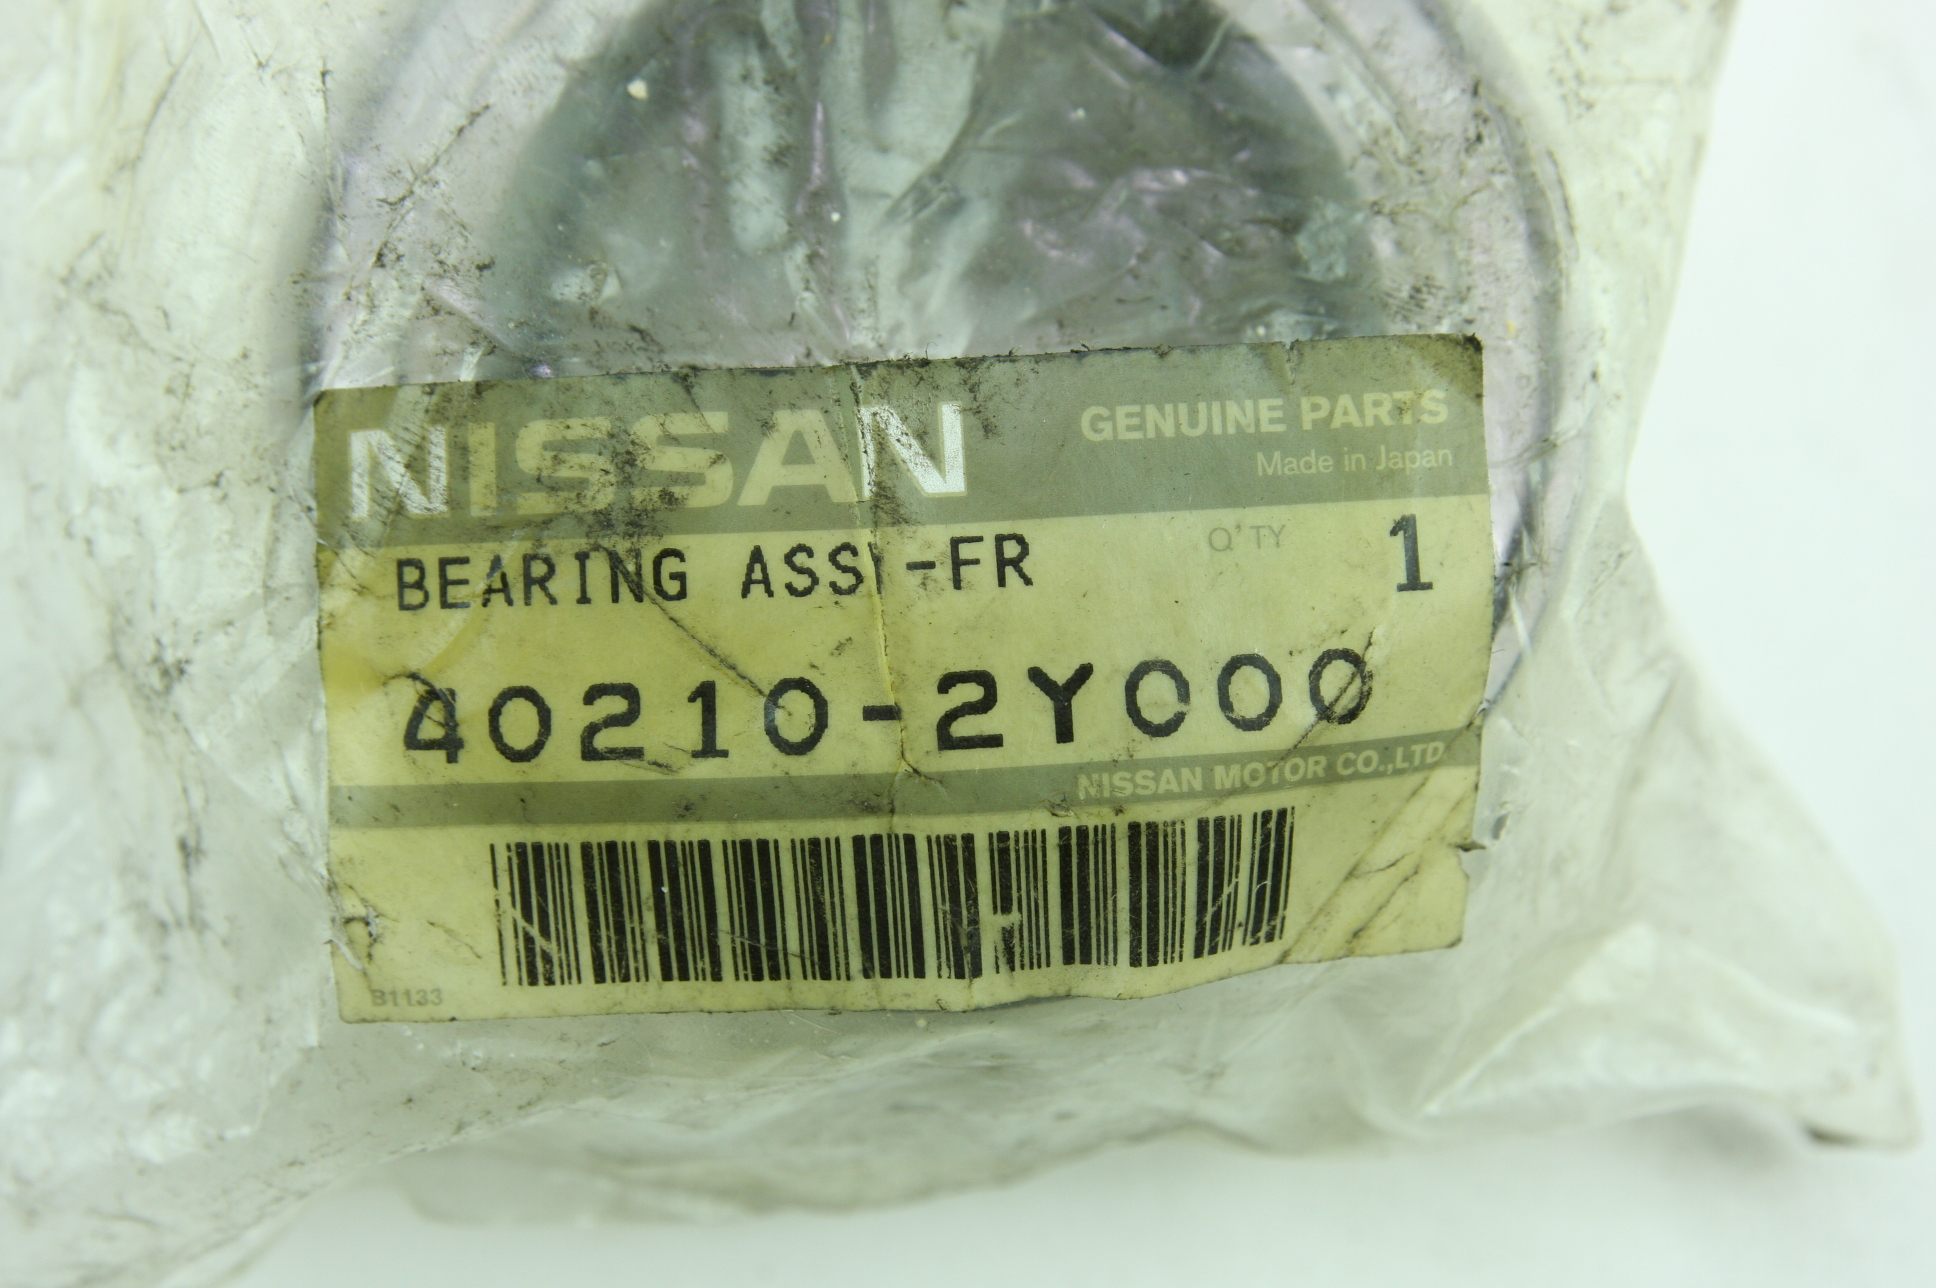 * New Genuine OEM Nissan 402102Y000 Front Wheel Bearing Fast Free Shipping - image 2